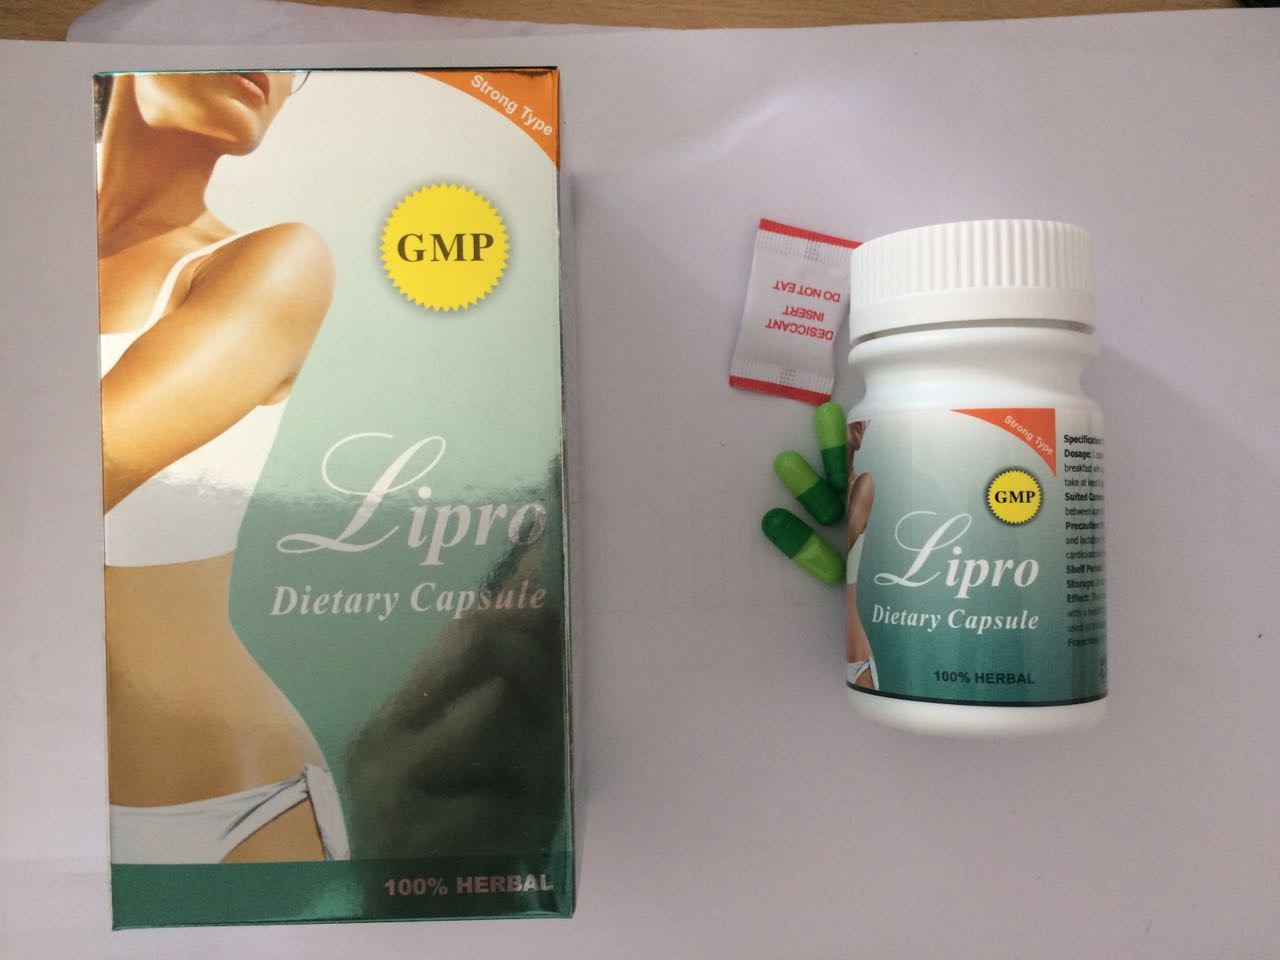 Prescription weight loss drugs fda approved photo 2